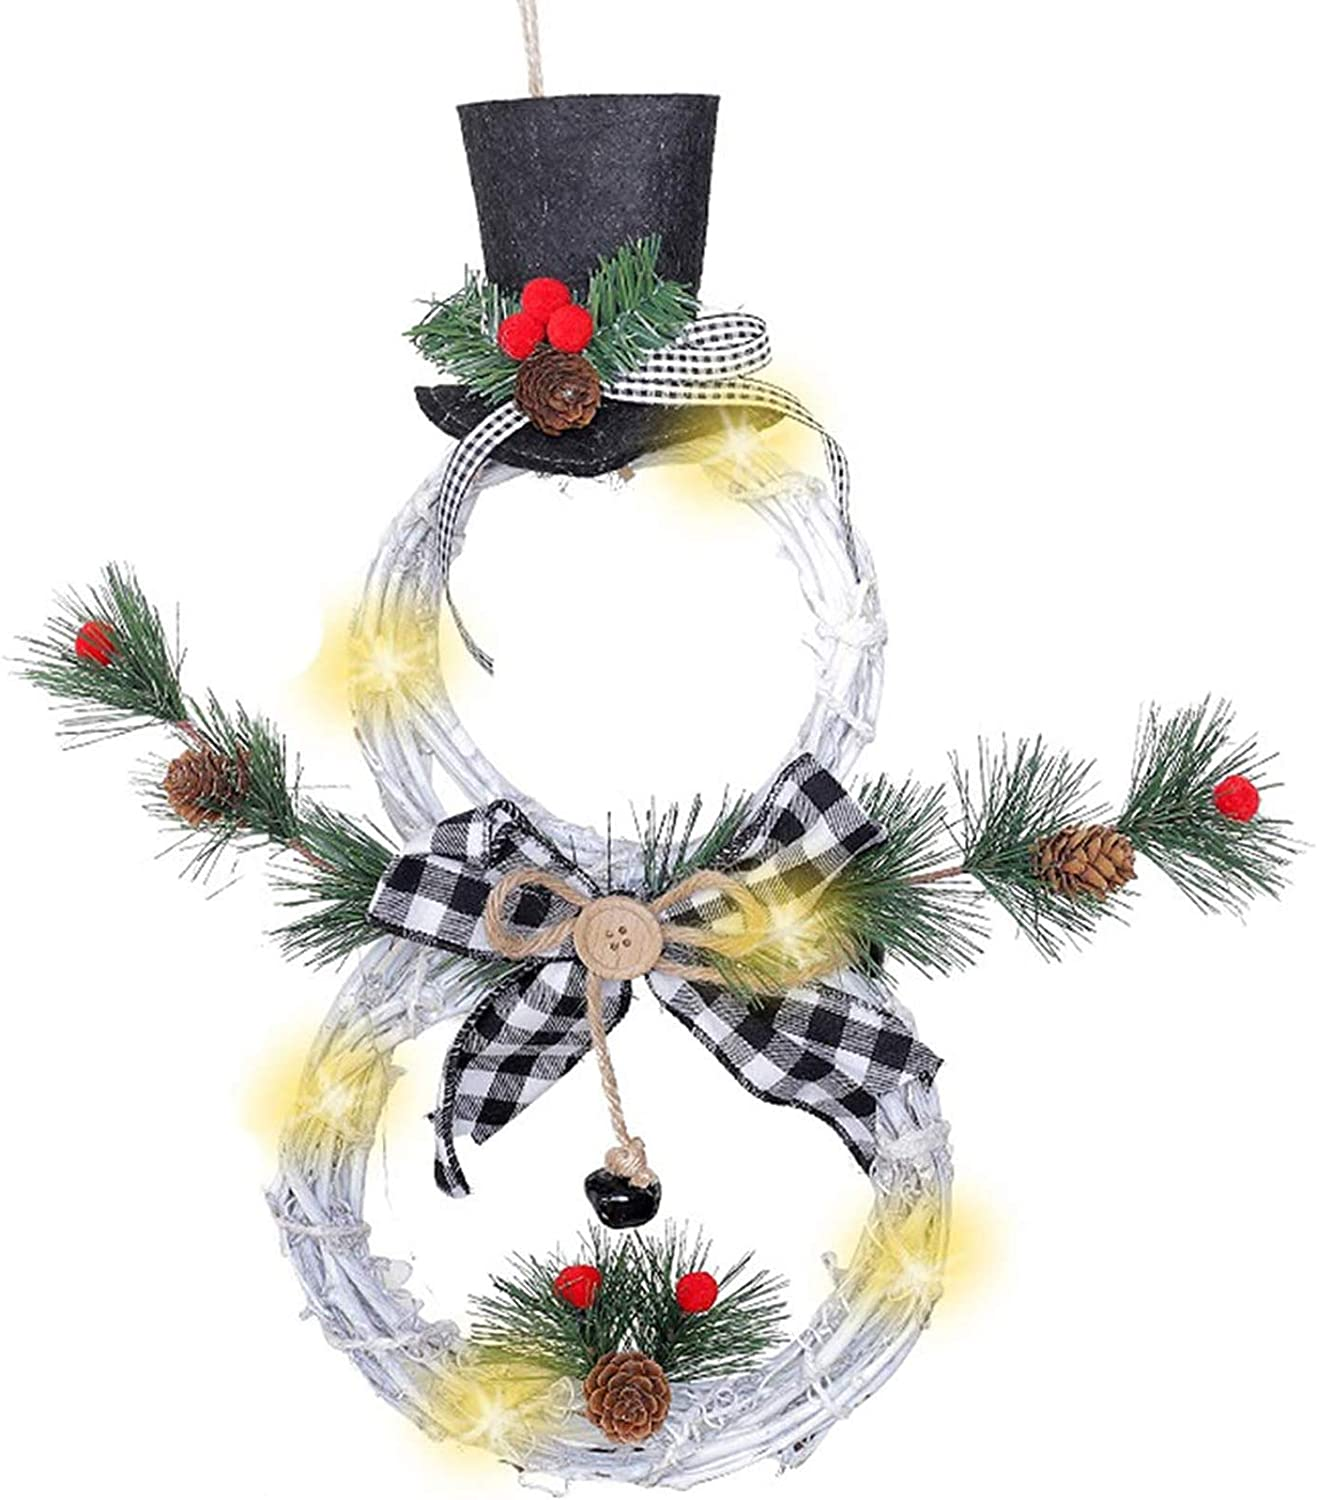 N/J Christmas Wreath Decoration - Lighted Ornament Home Decoration Garland Pendant with Beautiful Bow, Snowman Shape Wreath for Front Door Home Wall Decor (White)